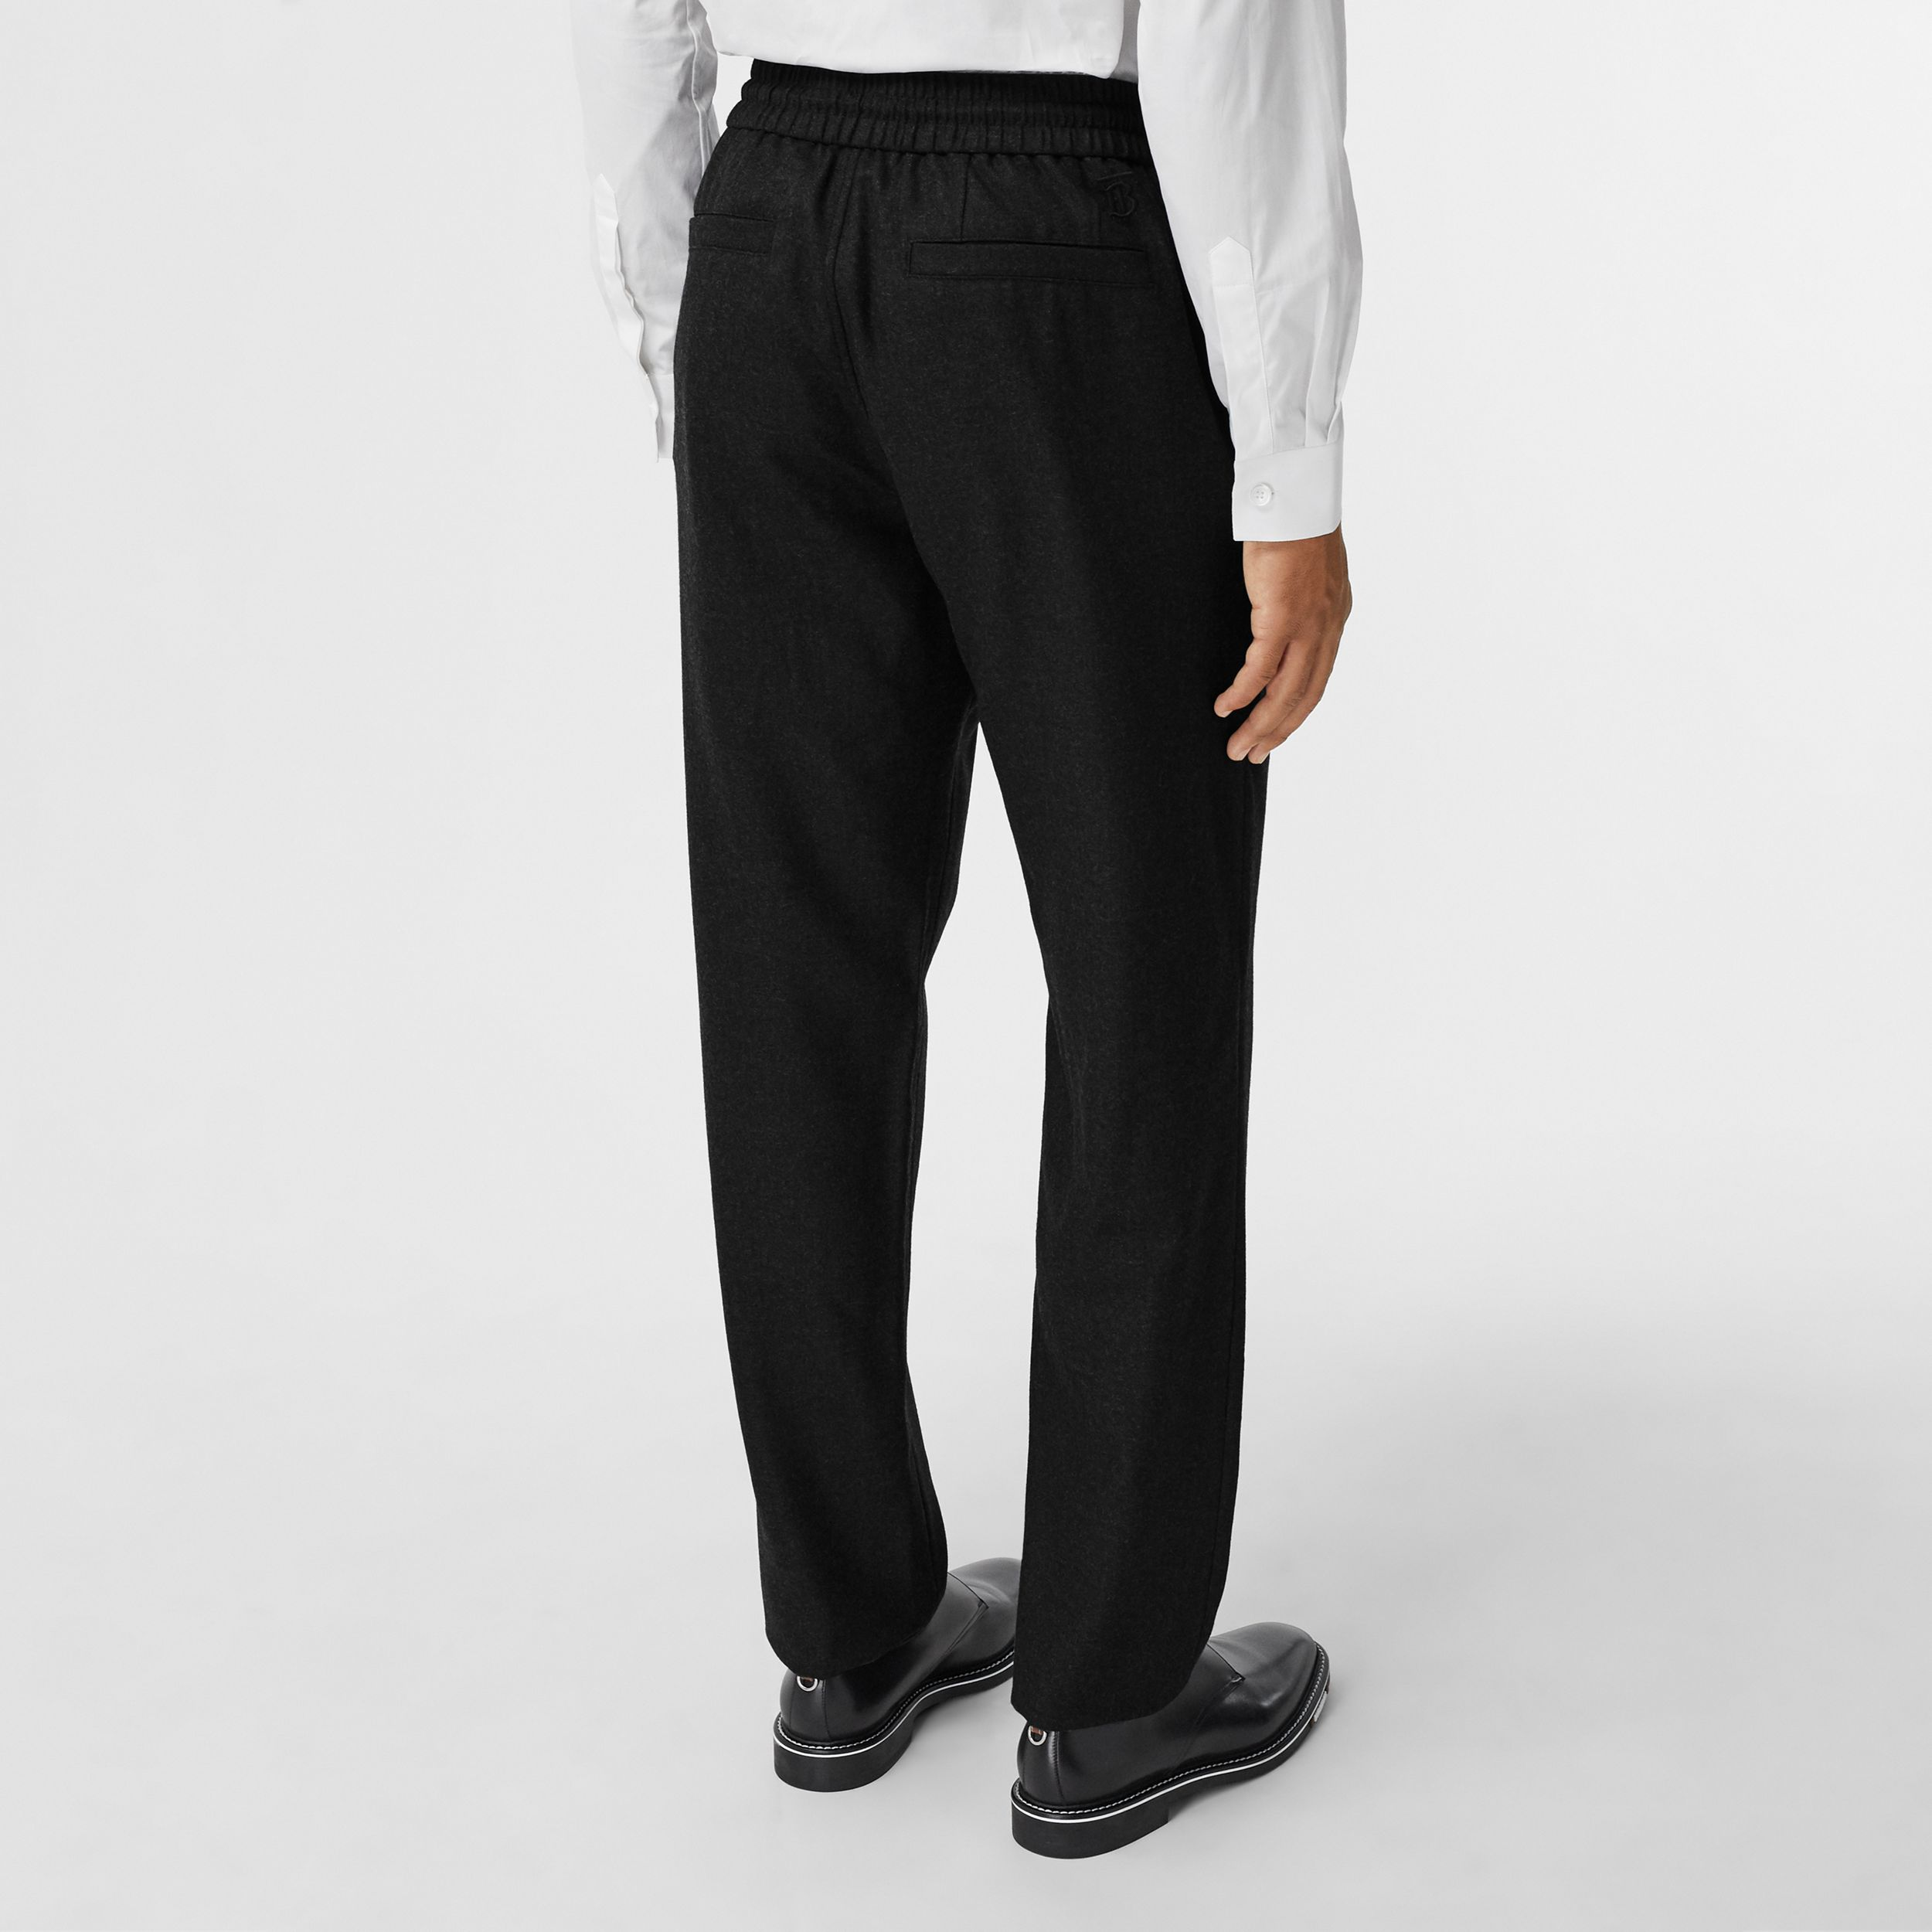 Monogram Motif Wool Jogging Pants in Black - Men | Burberry - 3